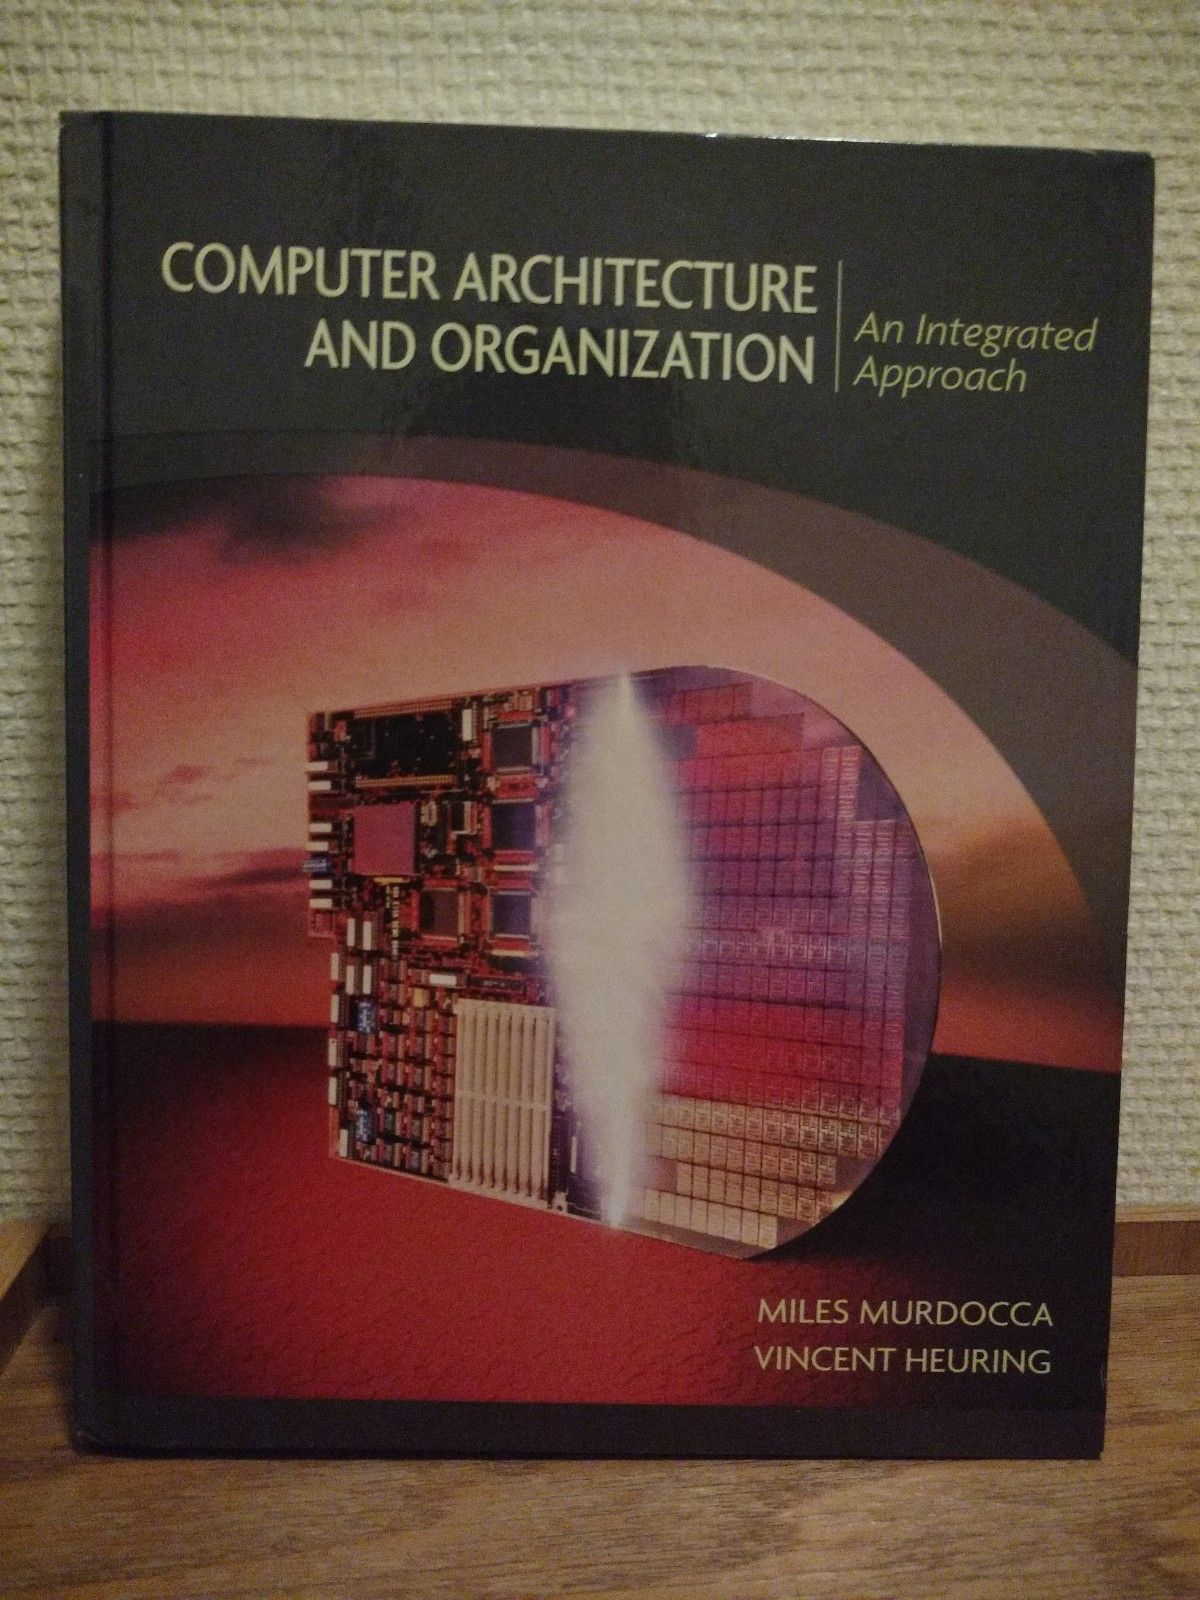 Computer Architecture and Organization - Trondheim  - Computer Architecture and Organization.